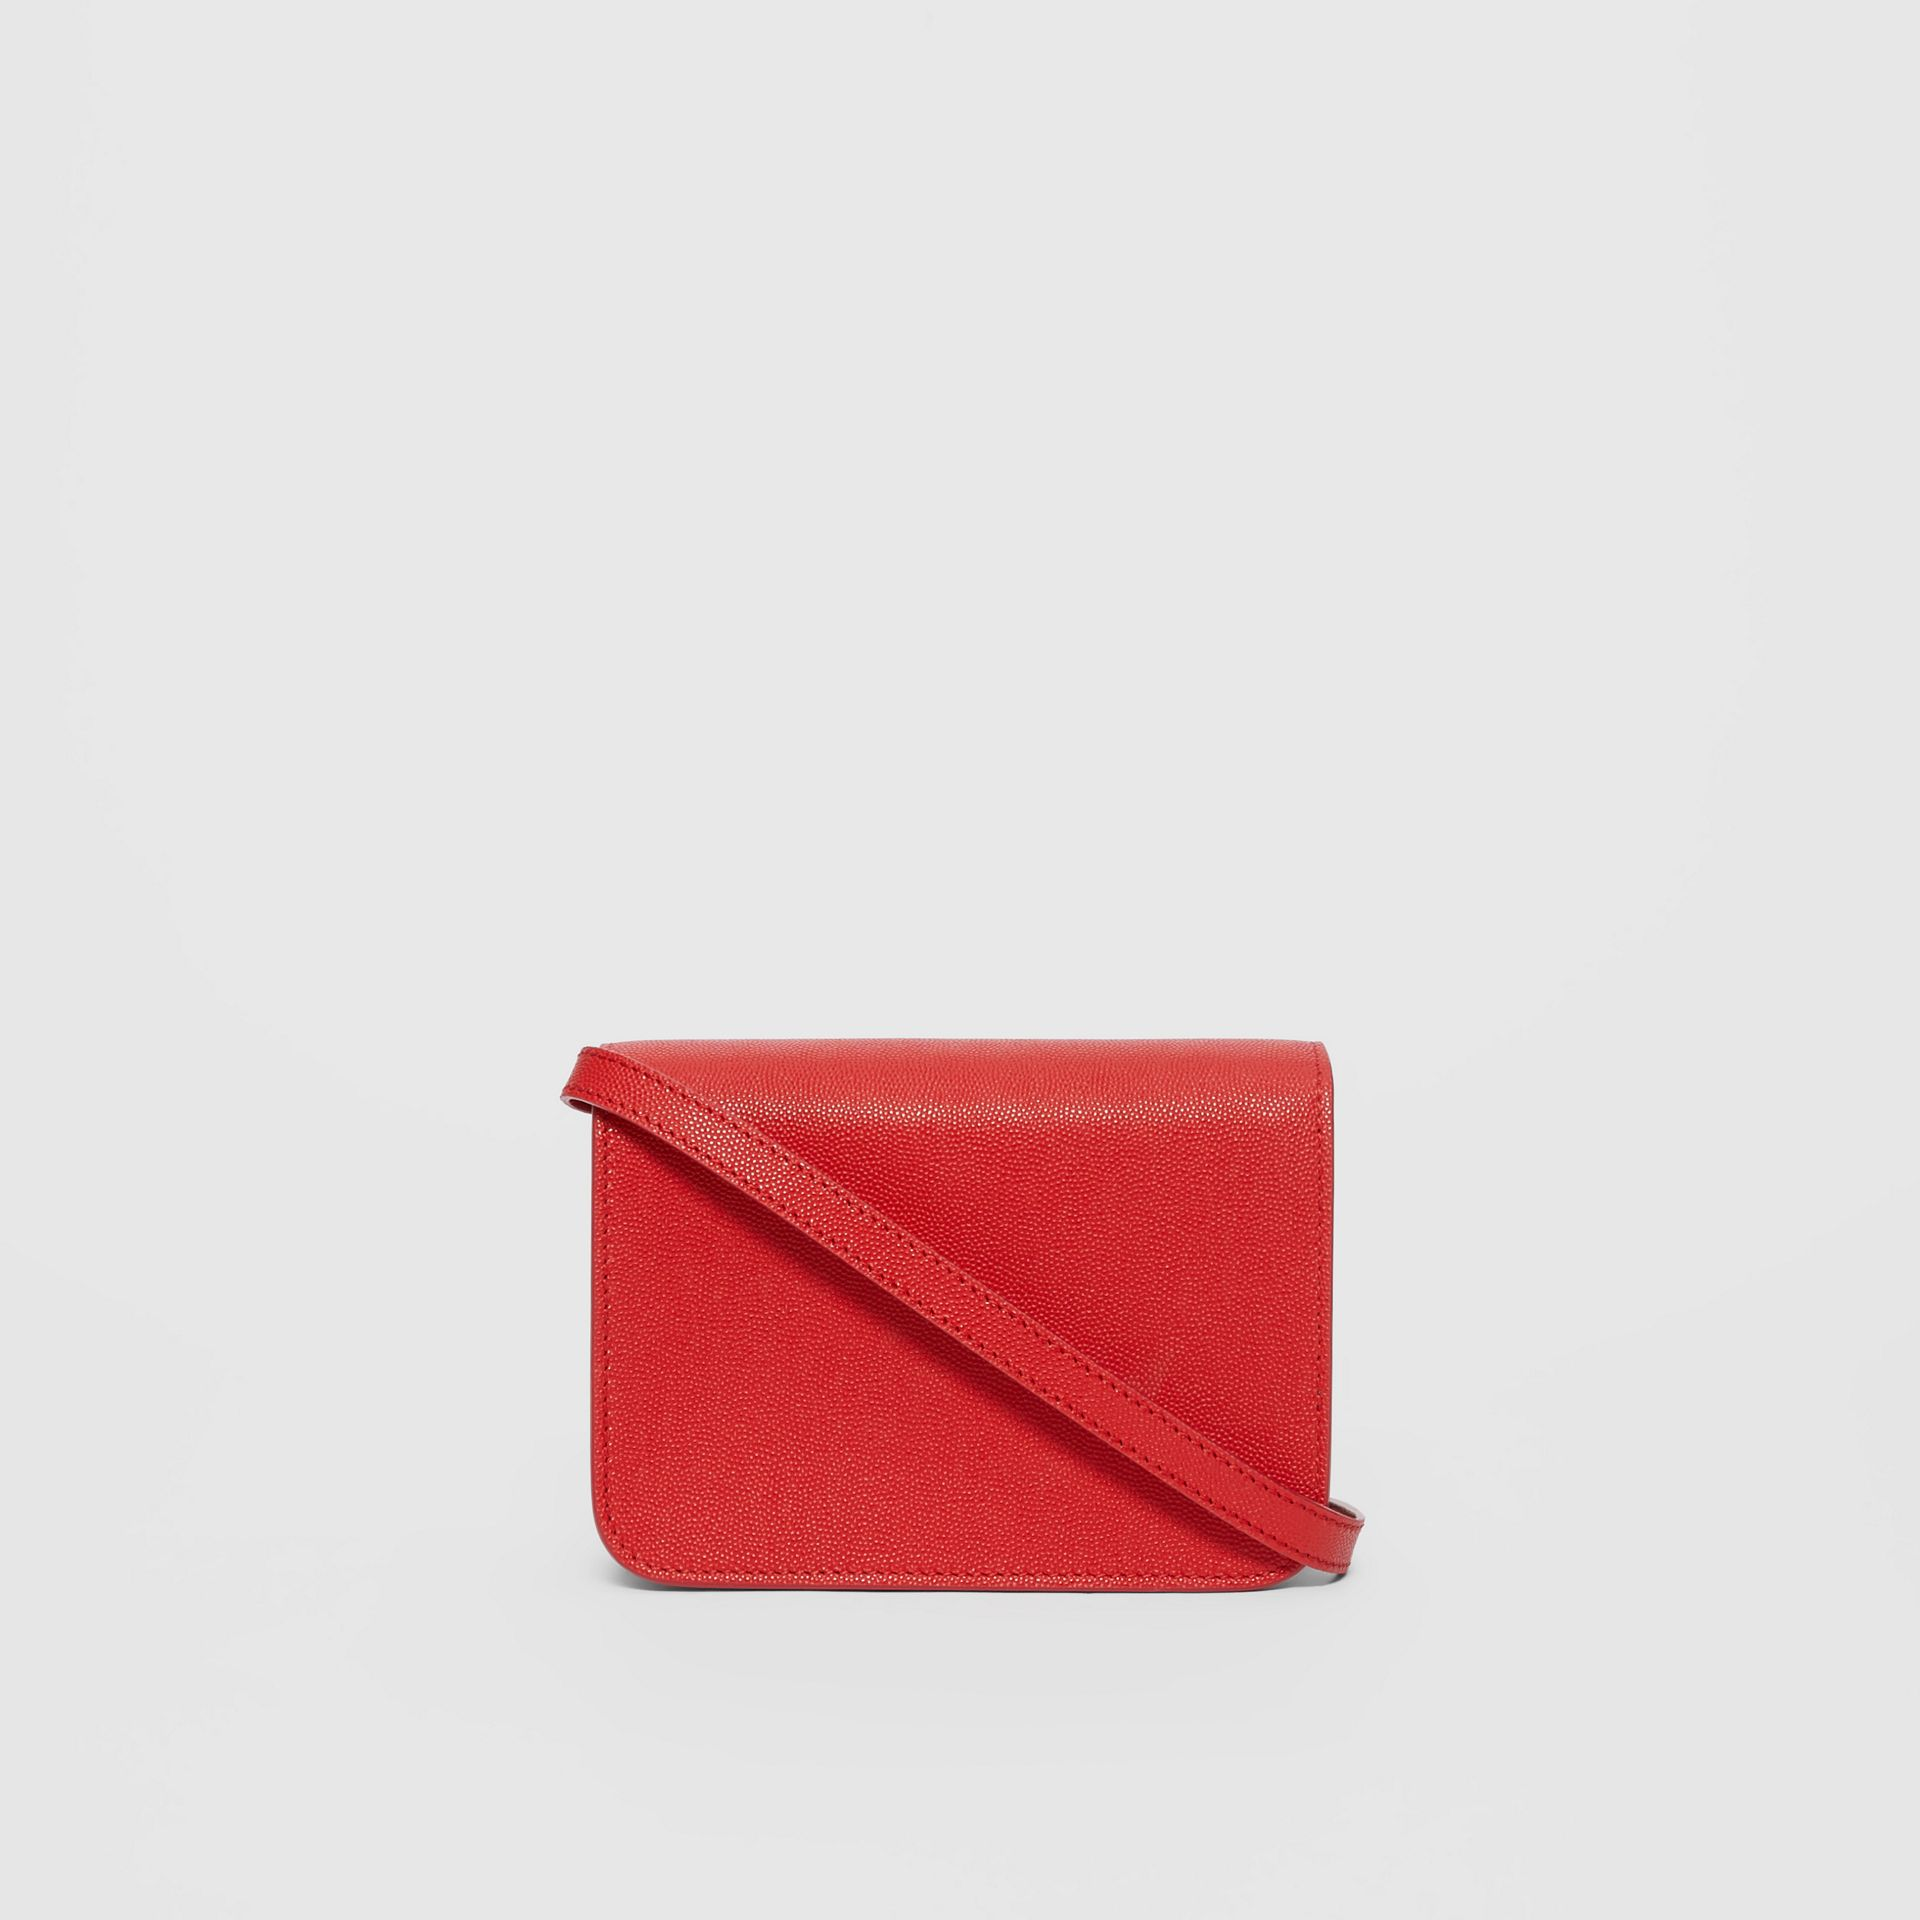 Mini Grainy Leather TB Bag in Bright Red - Women | Burberry Singapore - gallery image 5